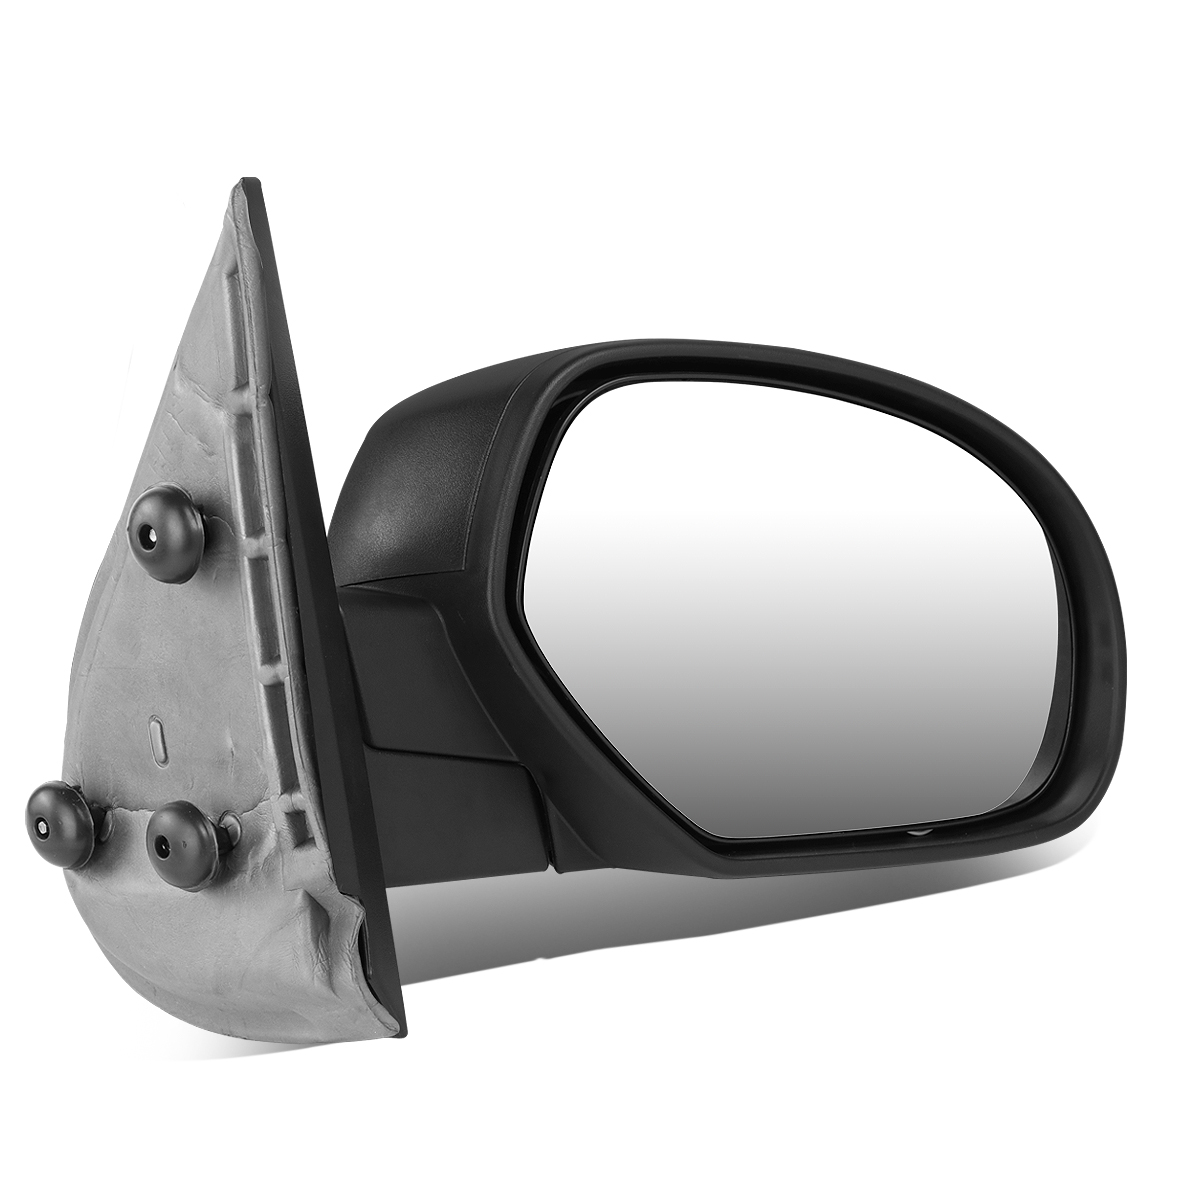 For 2007-2014 Chevy Silverado Tahoe/GMC Sierra Yukon XL Powered+Heated Side View Mirror (Right/Passenger)